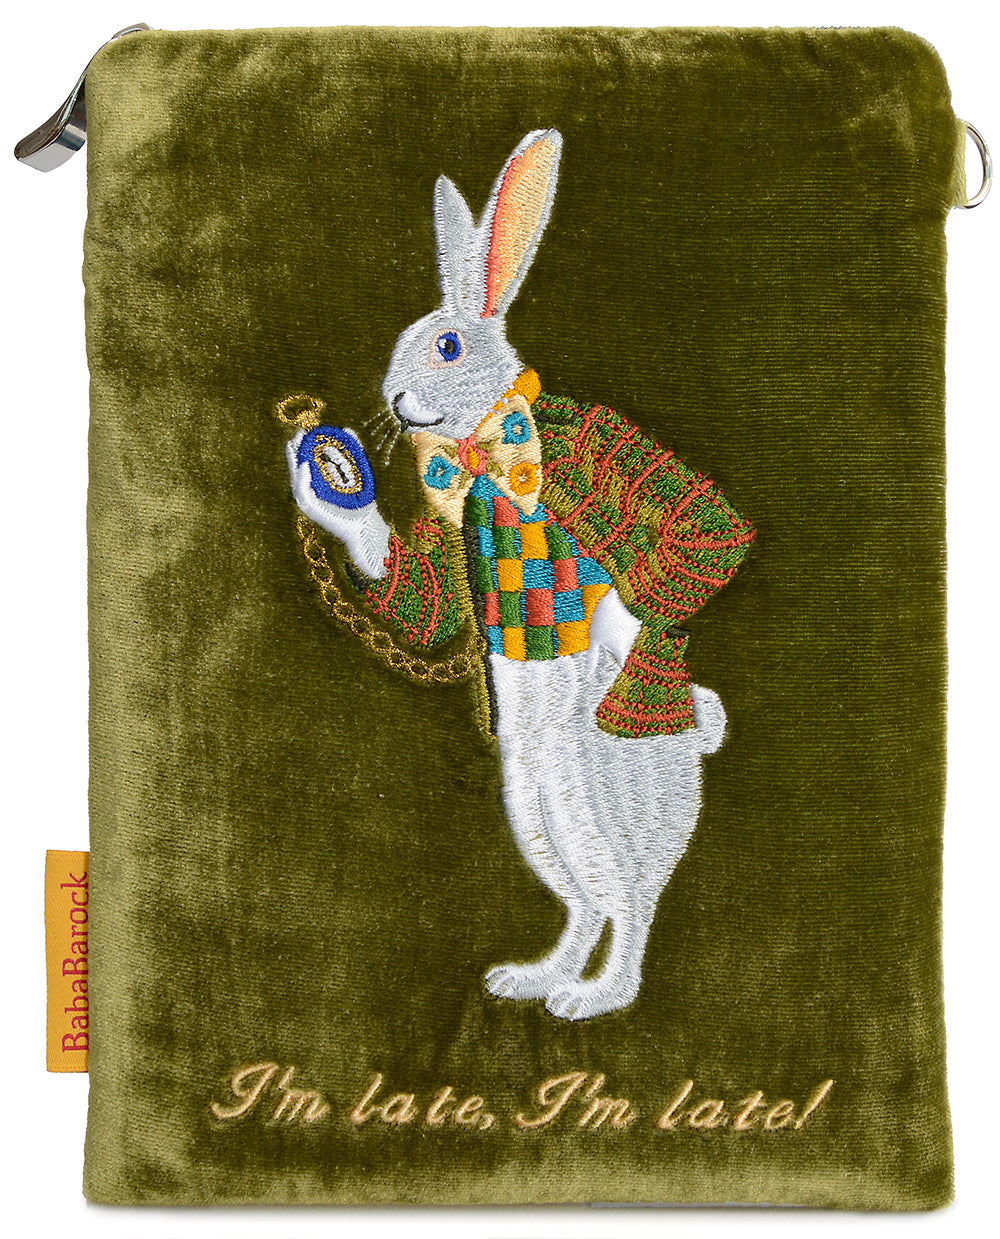 white rabbit, alice, wonderland, I'm late, embroidered, velvet, wristlet, pouch